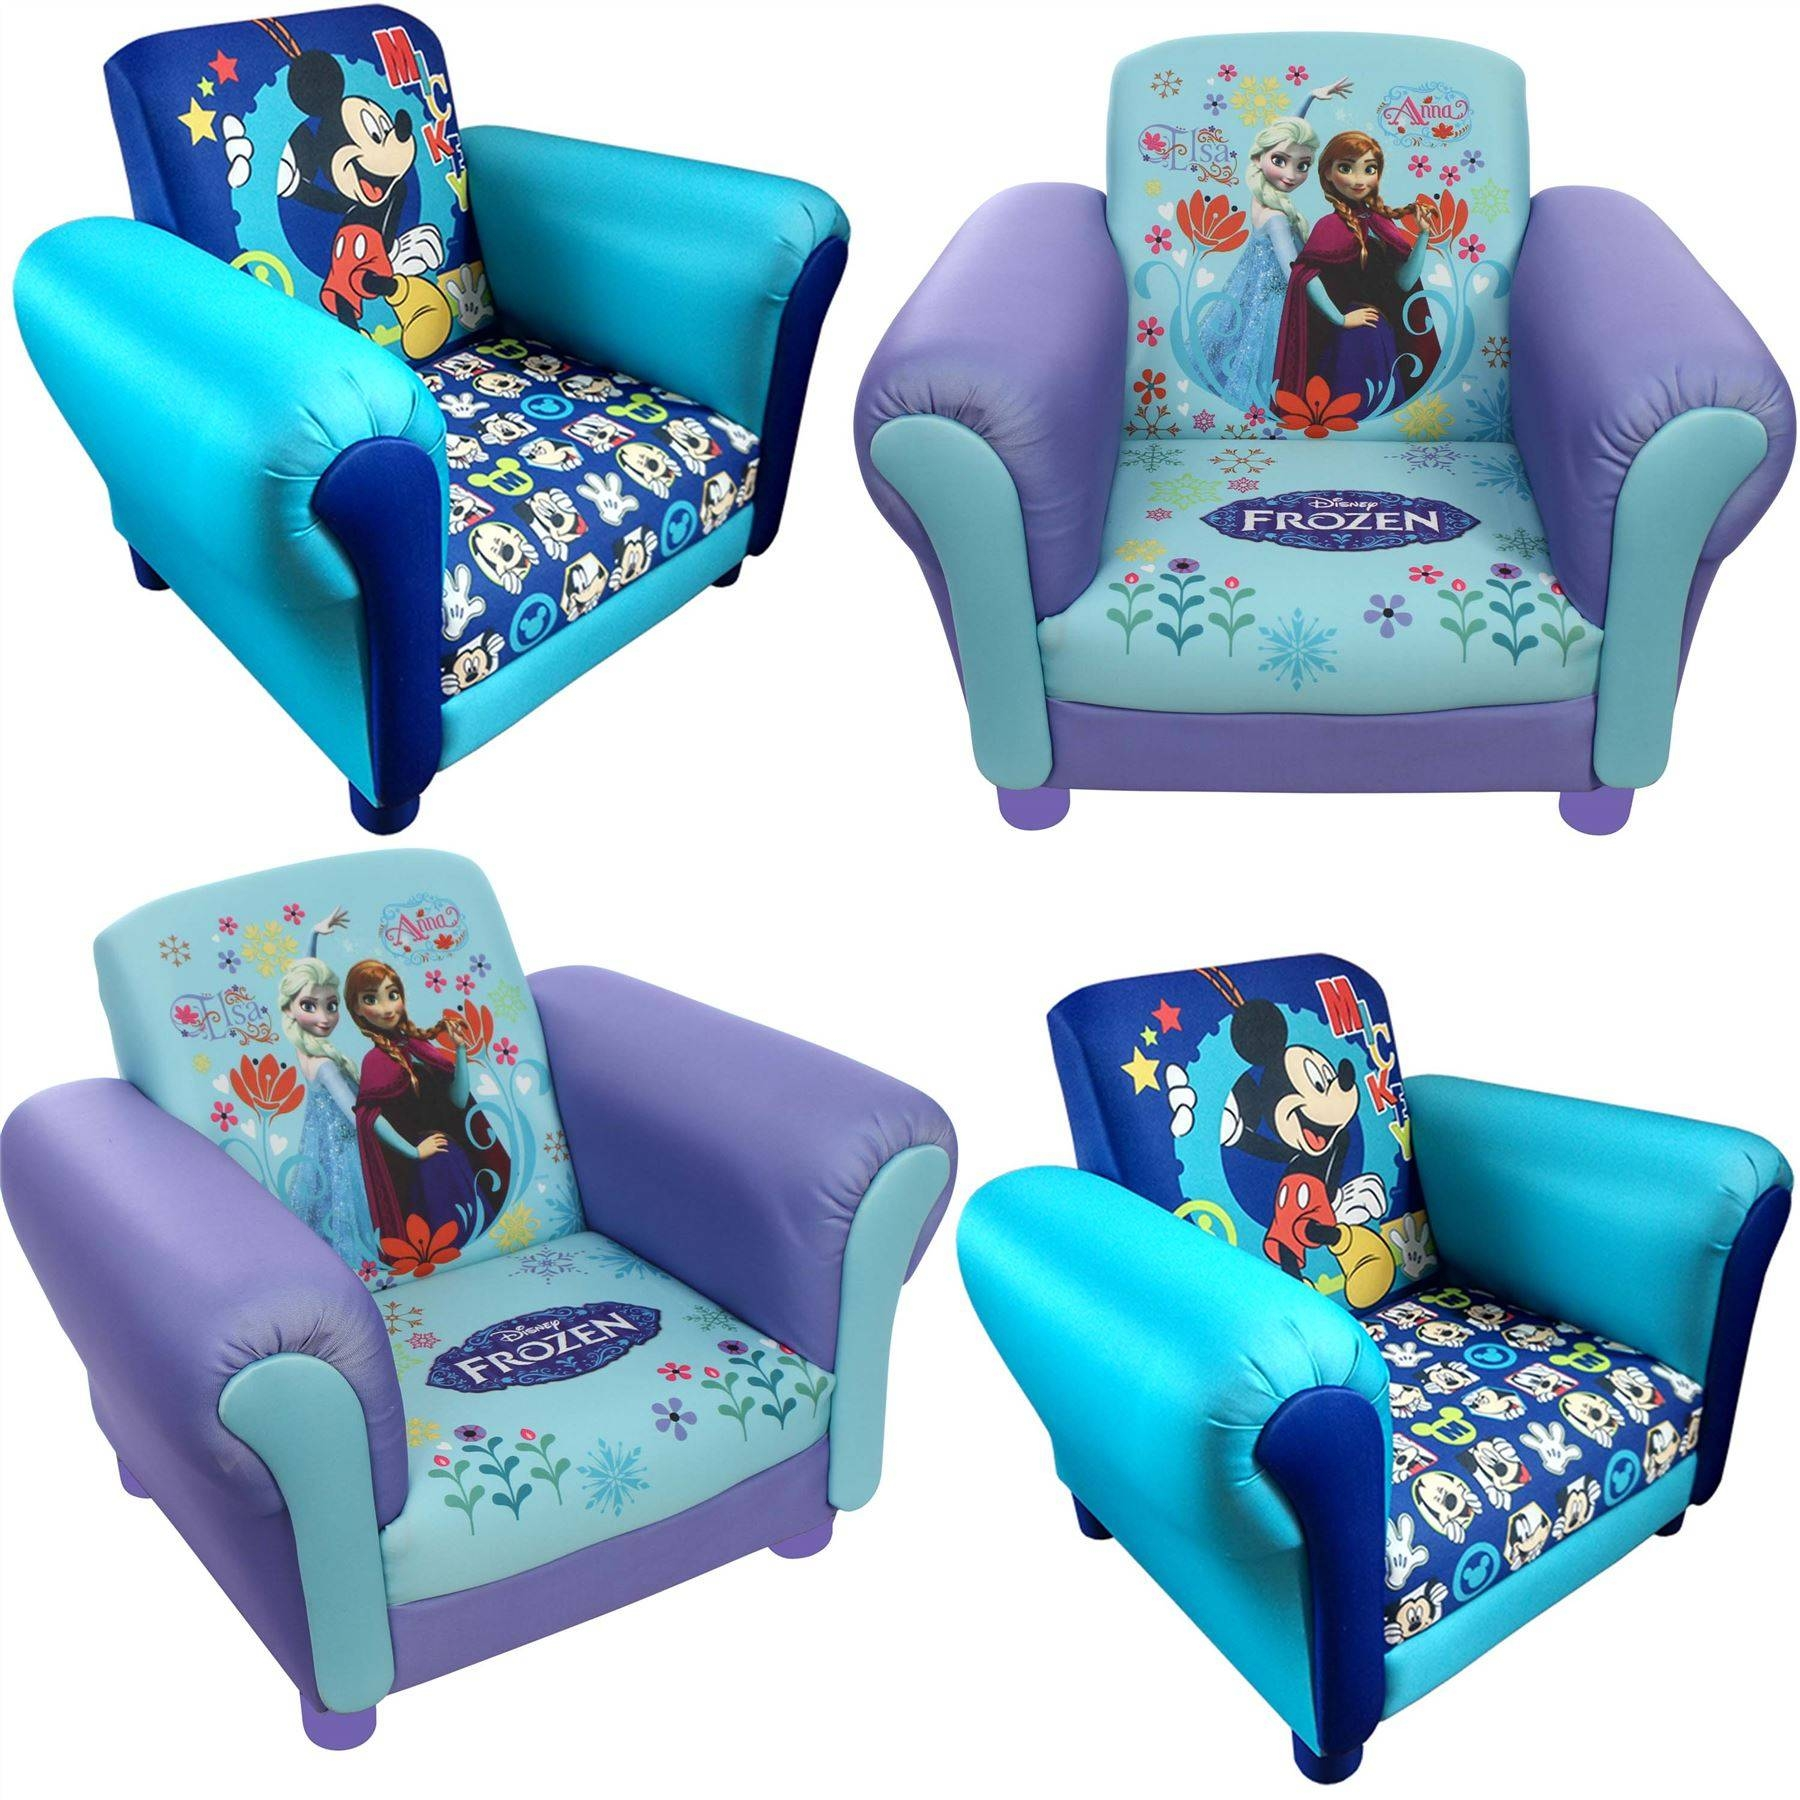 Childrens Disney Kids Frozen Anna & Elsa Mickey Mouse Cartoon with Disney Sofa Chairs (Image 2 of 15)